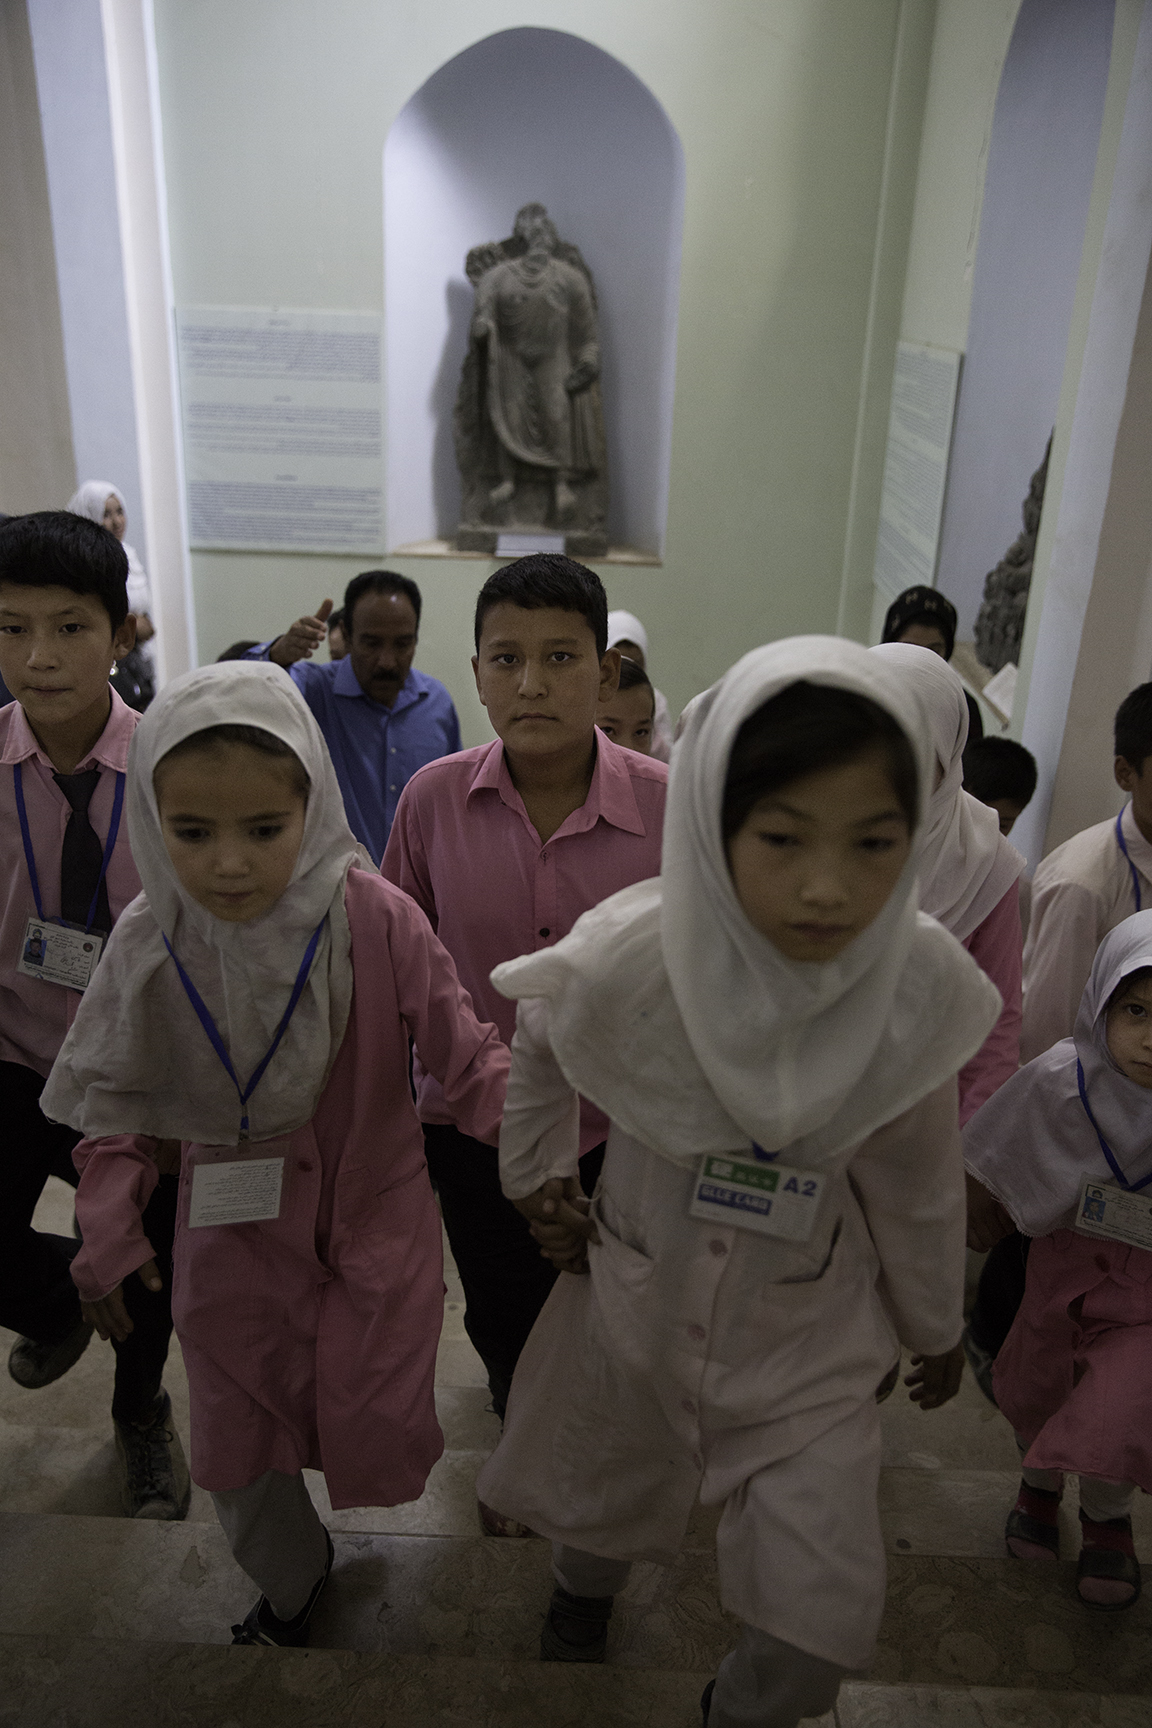 Schoolgirls and boys are guided past exhibits at the National Museum of Afghanistan in Kabul. The museum has become the centerpiece of attempts by Afghan educators to teach the post-war generation about their country's rich and diverse culture.